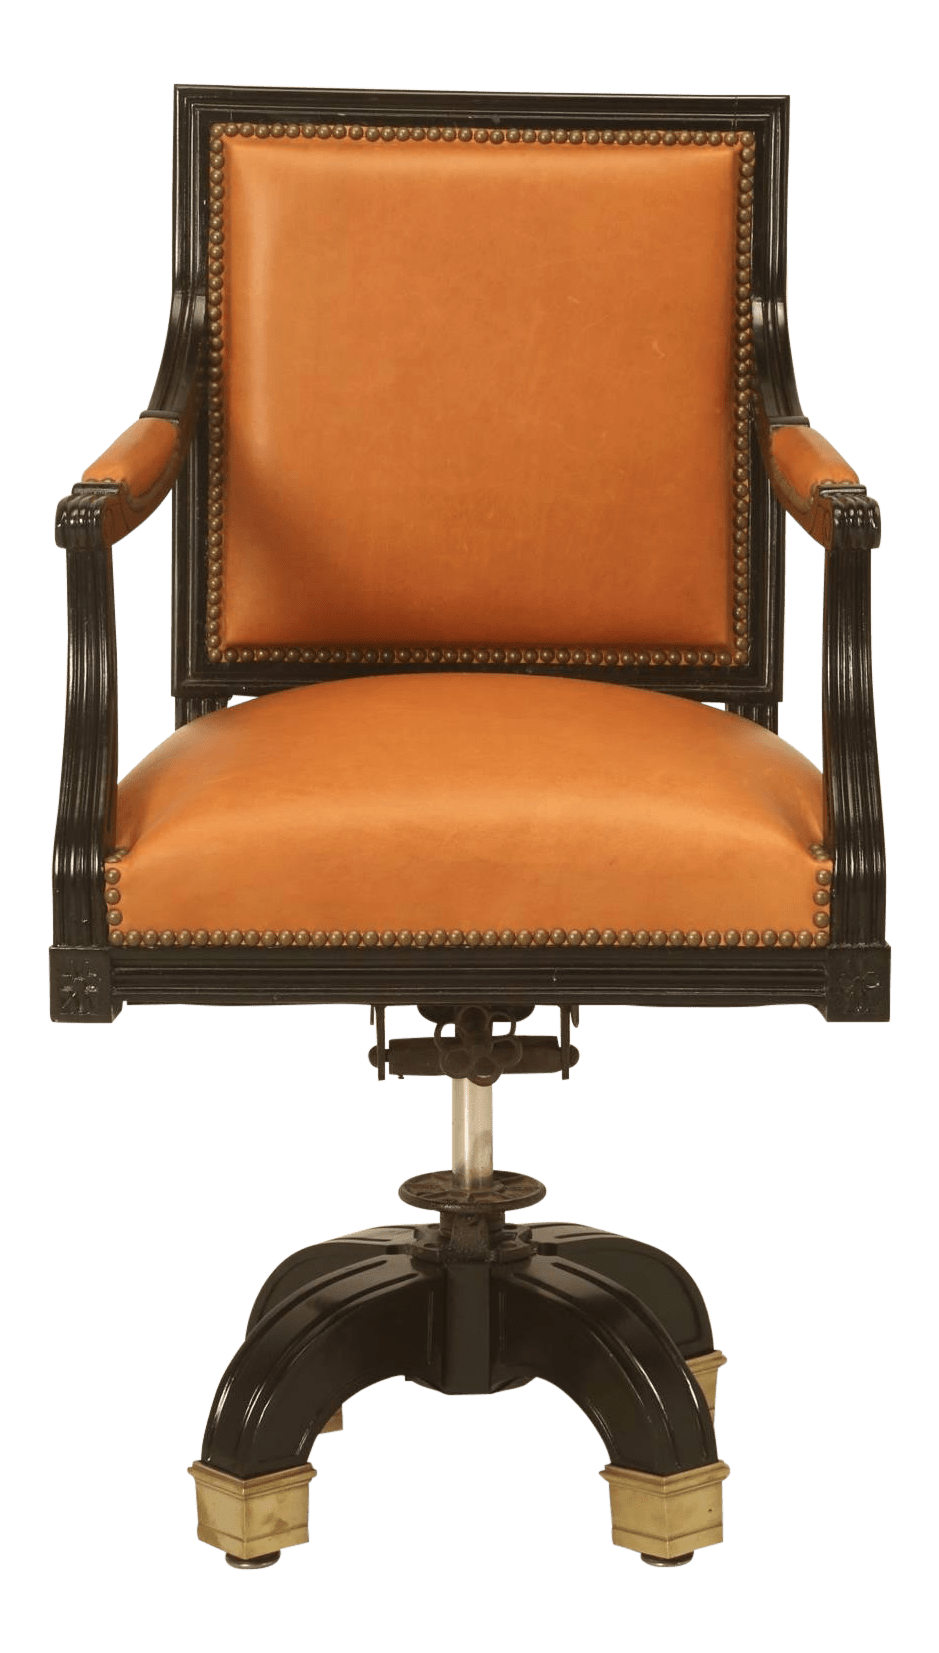 Saddle Office Chair French Louis Xvi Style Desk Chair Done In Ebony And Saddle Leather